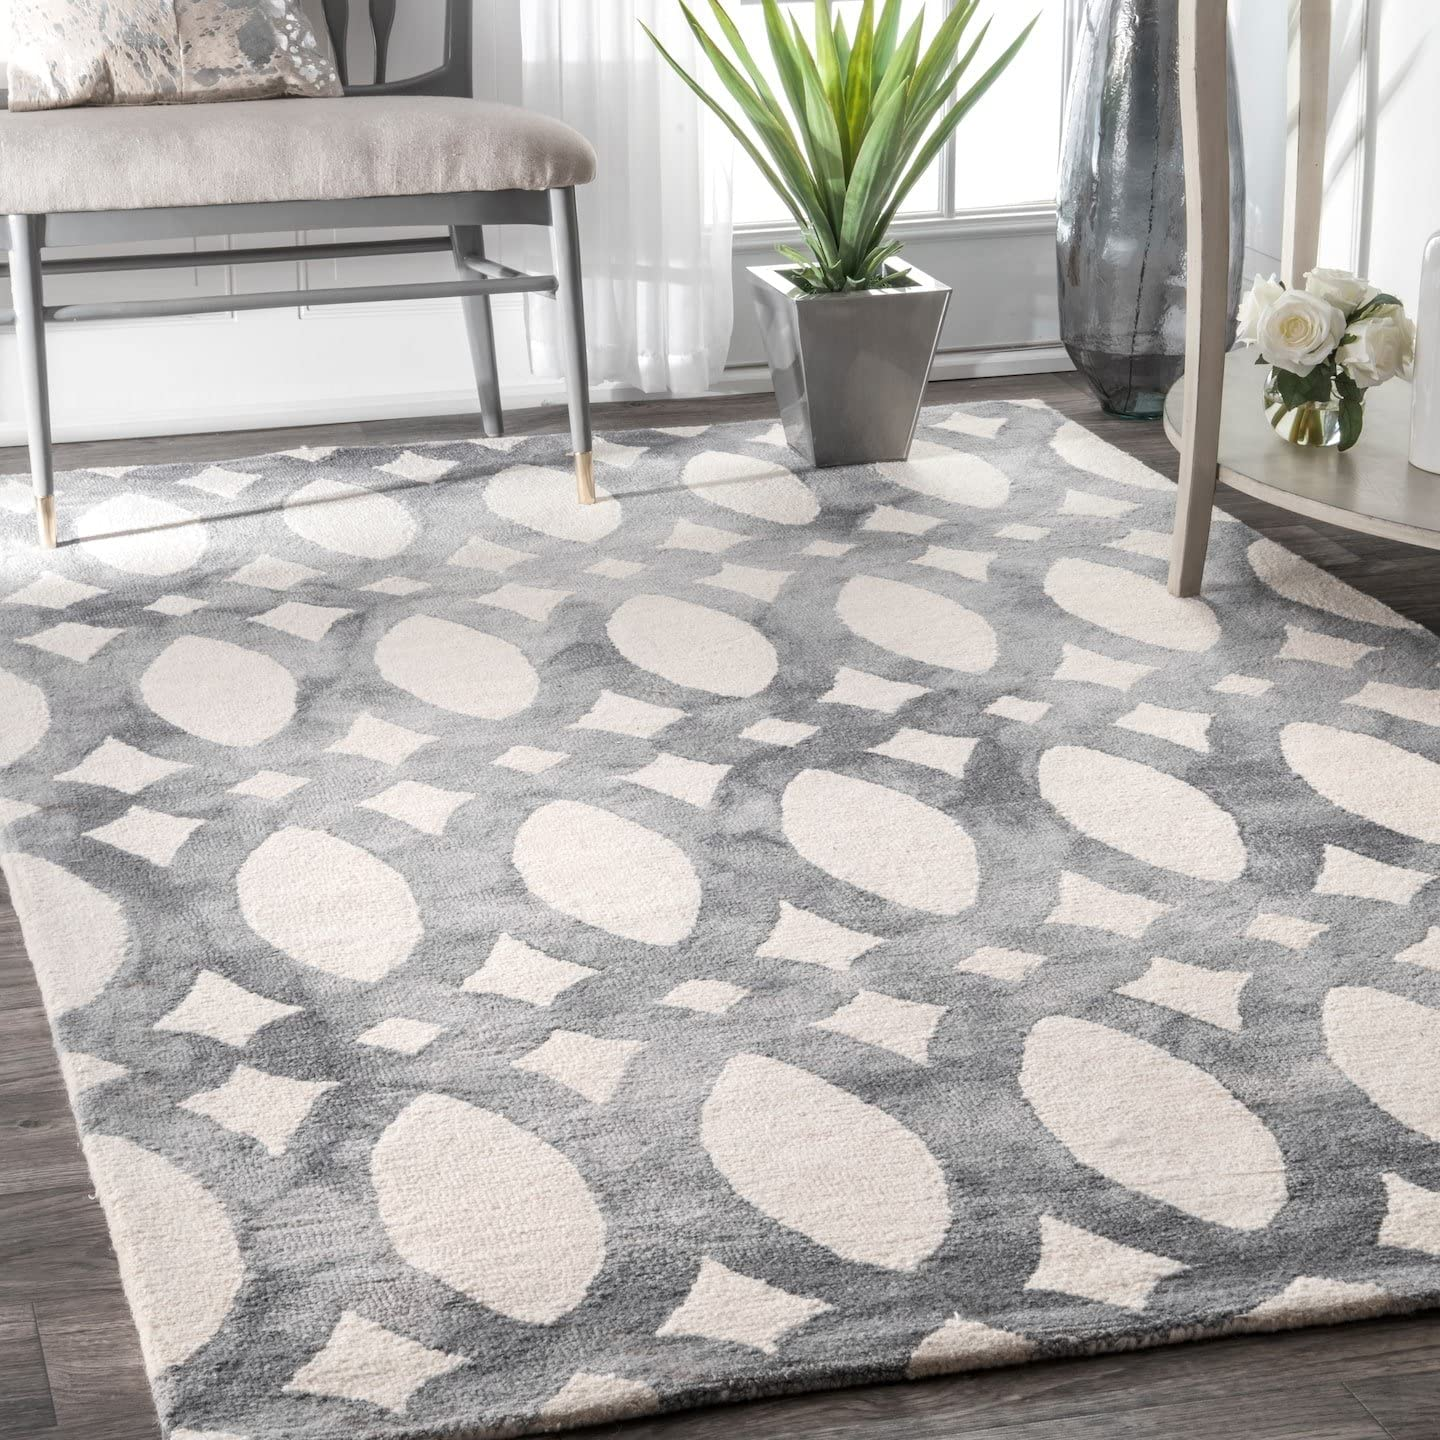 nuLOOM Nellie Hand Looped Wool Rug, 8 6 x 11 6 , Grey